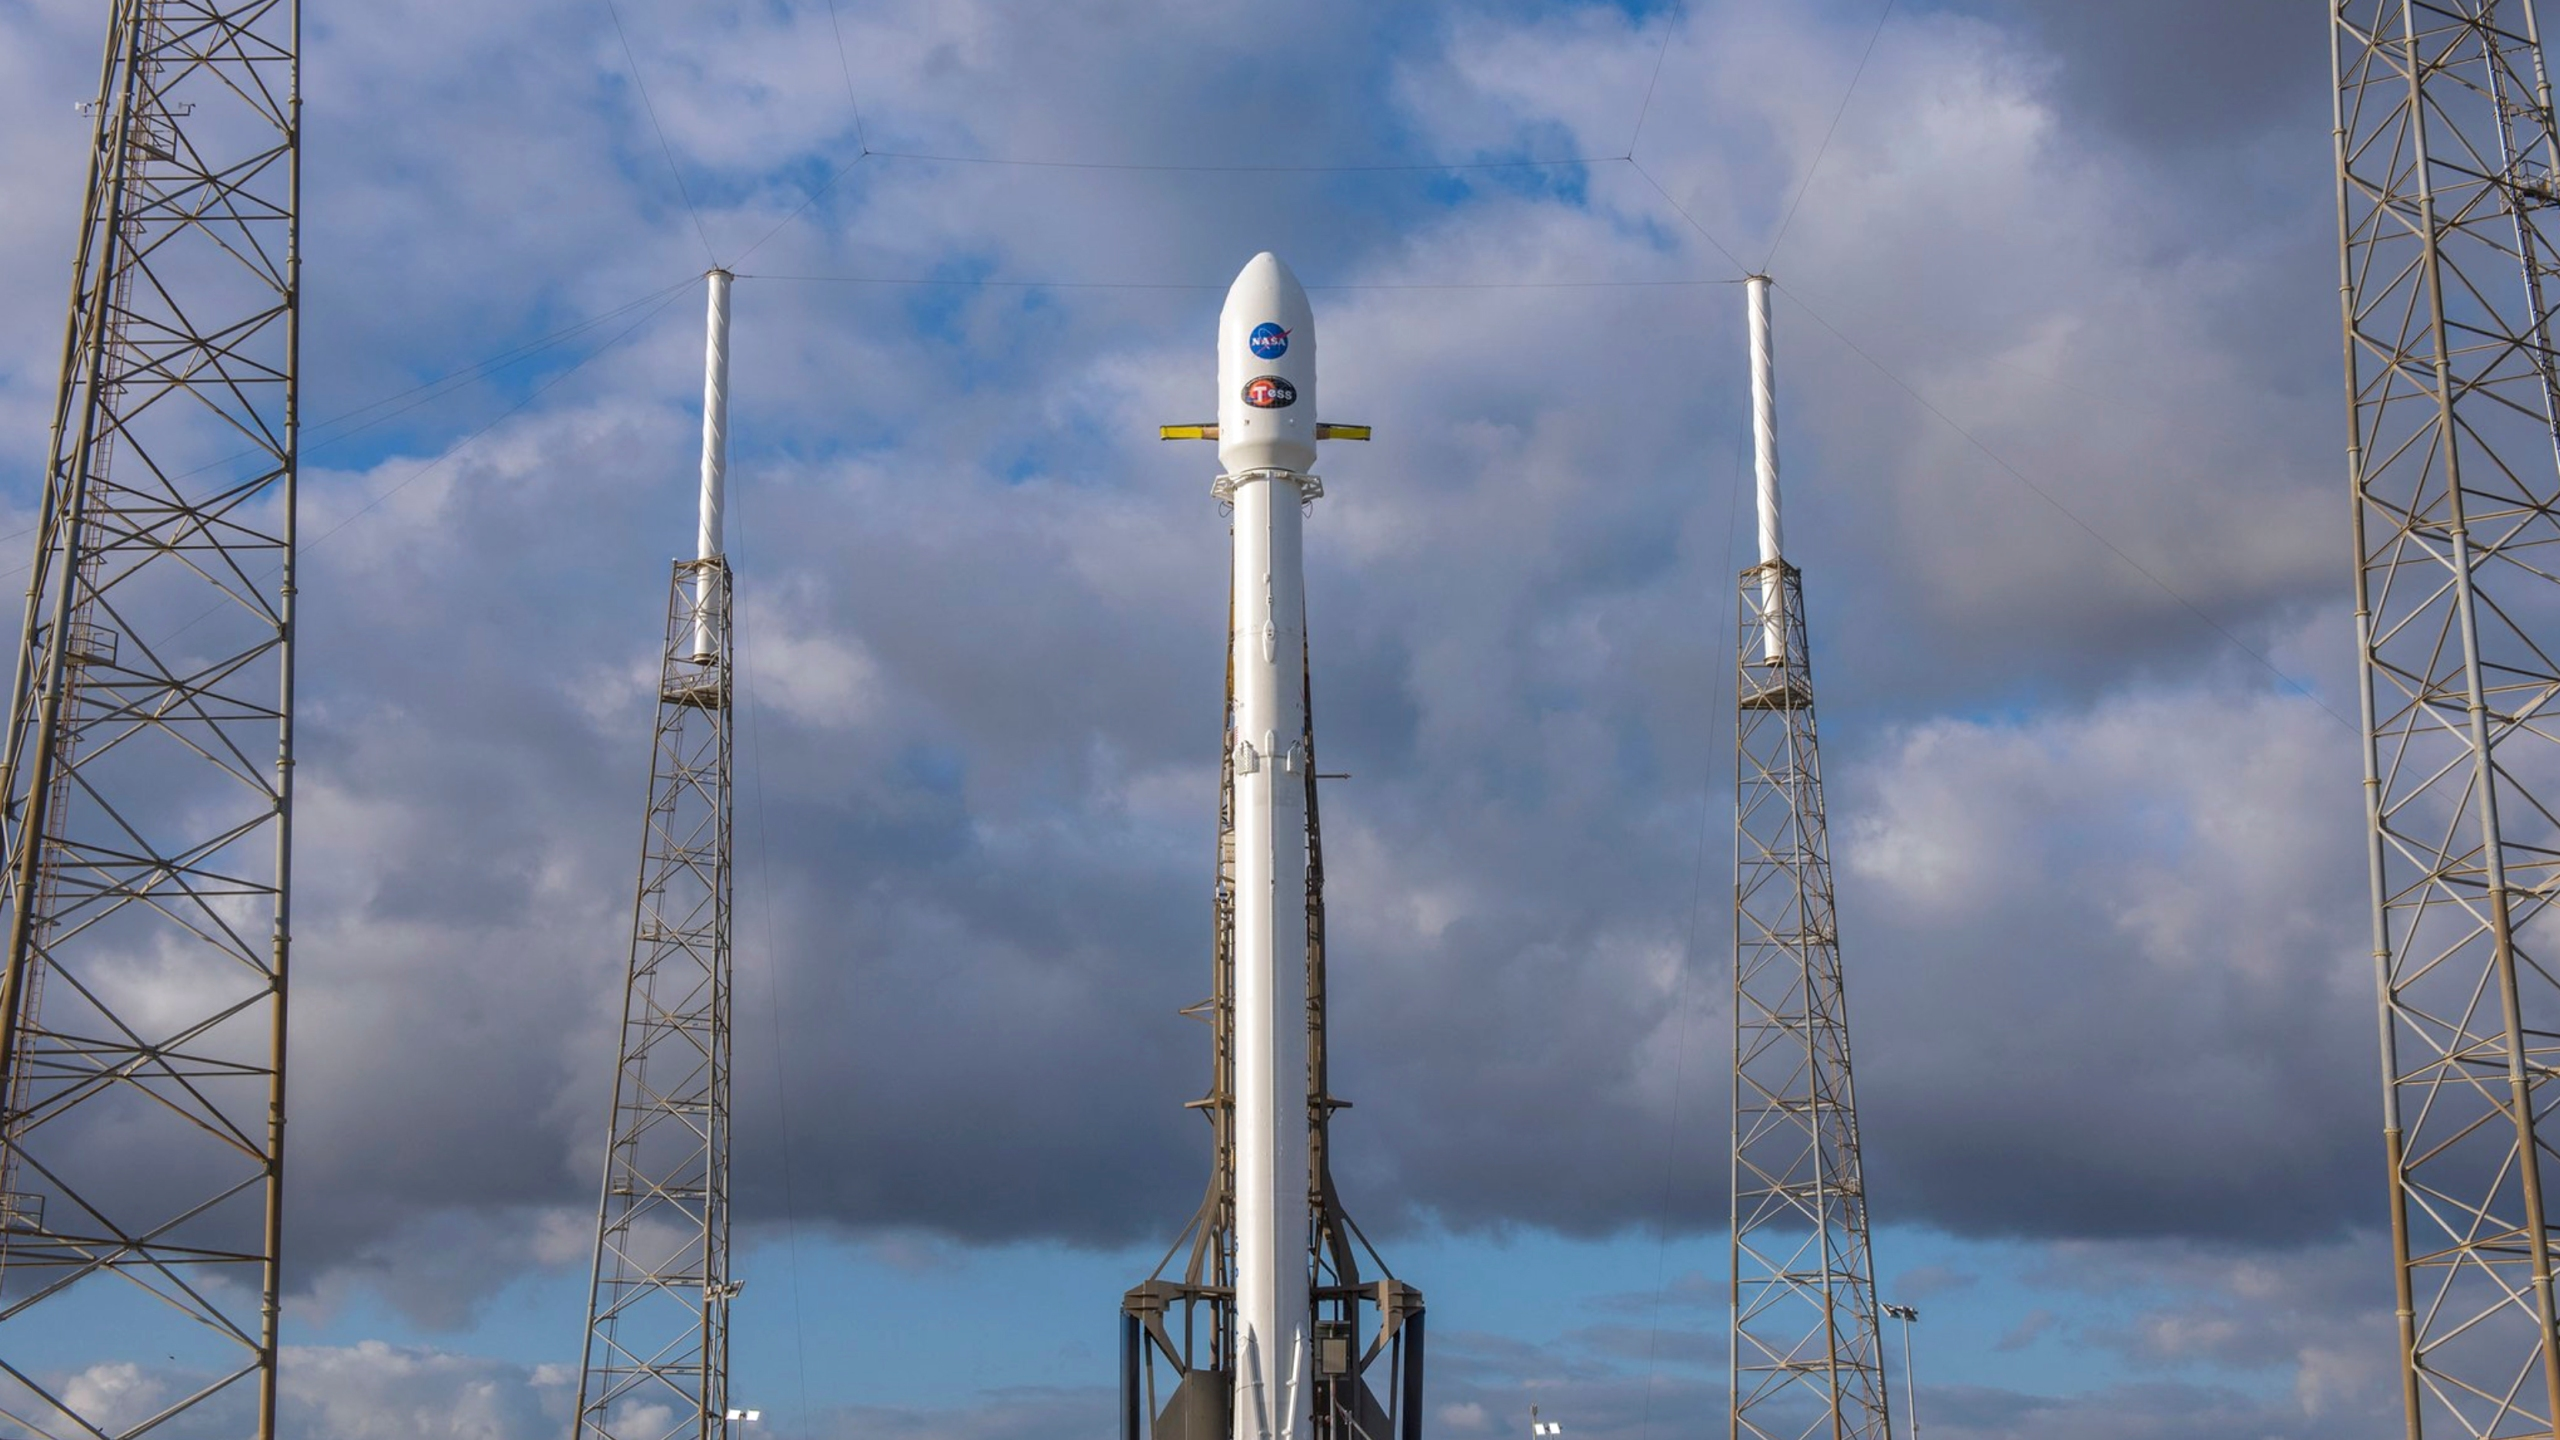 nasa spacex launch live feed - HD2560×1440